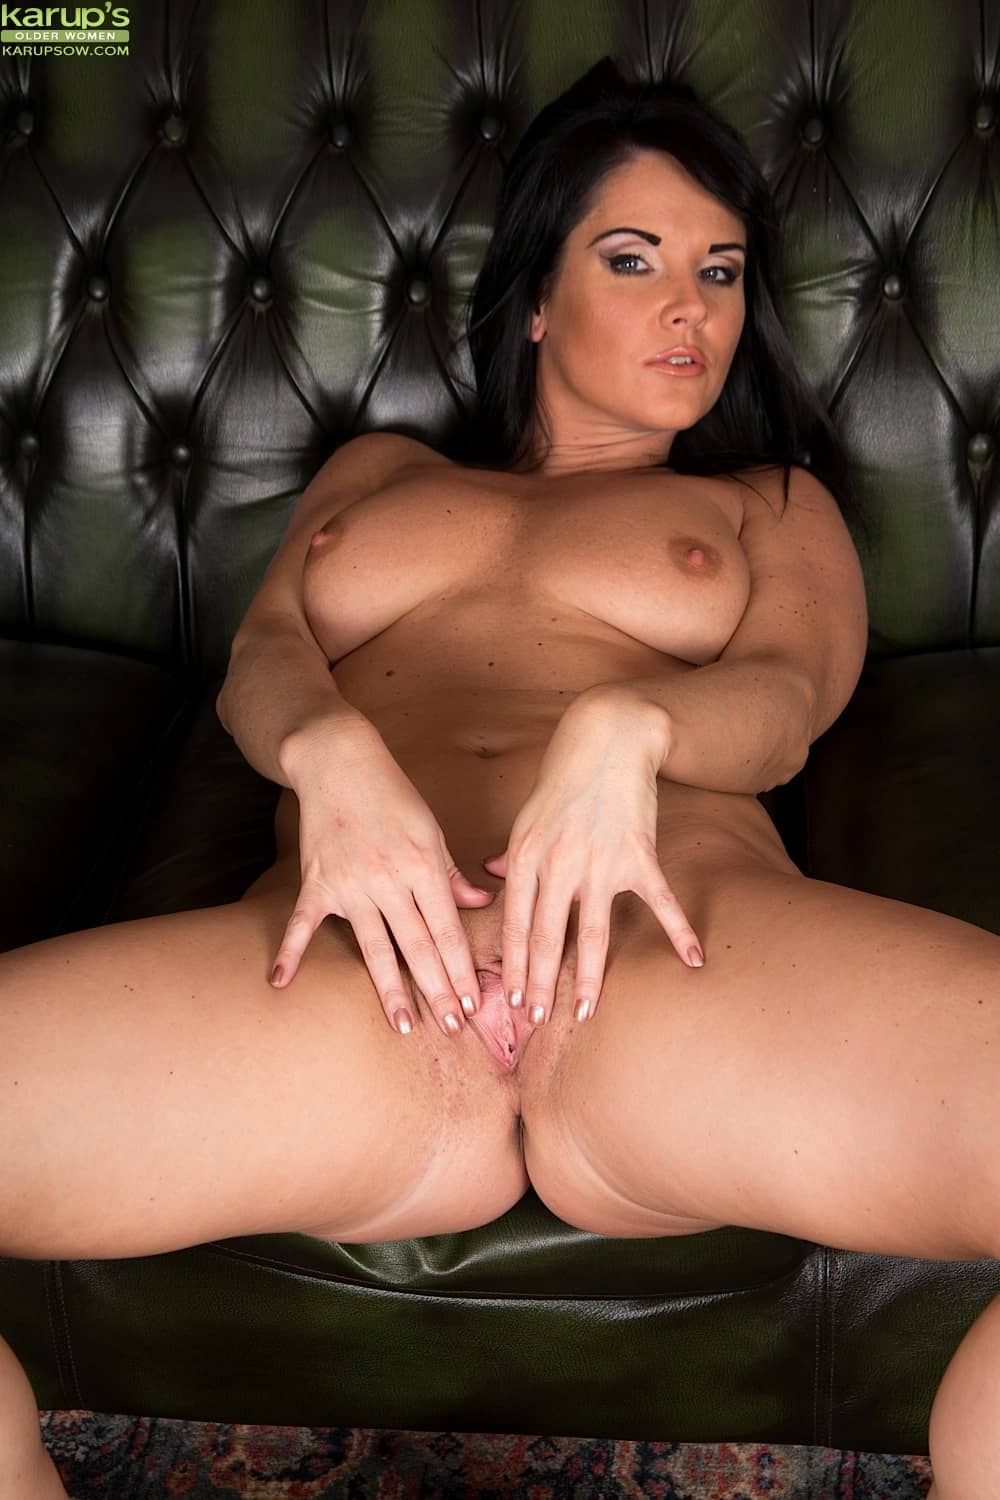 Curvy mature babe Danielle Leah Raven playing with her shaved pussy on the sofa at Karupsow